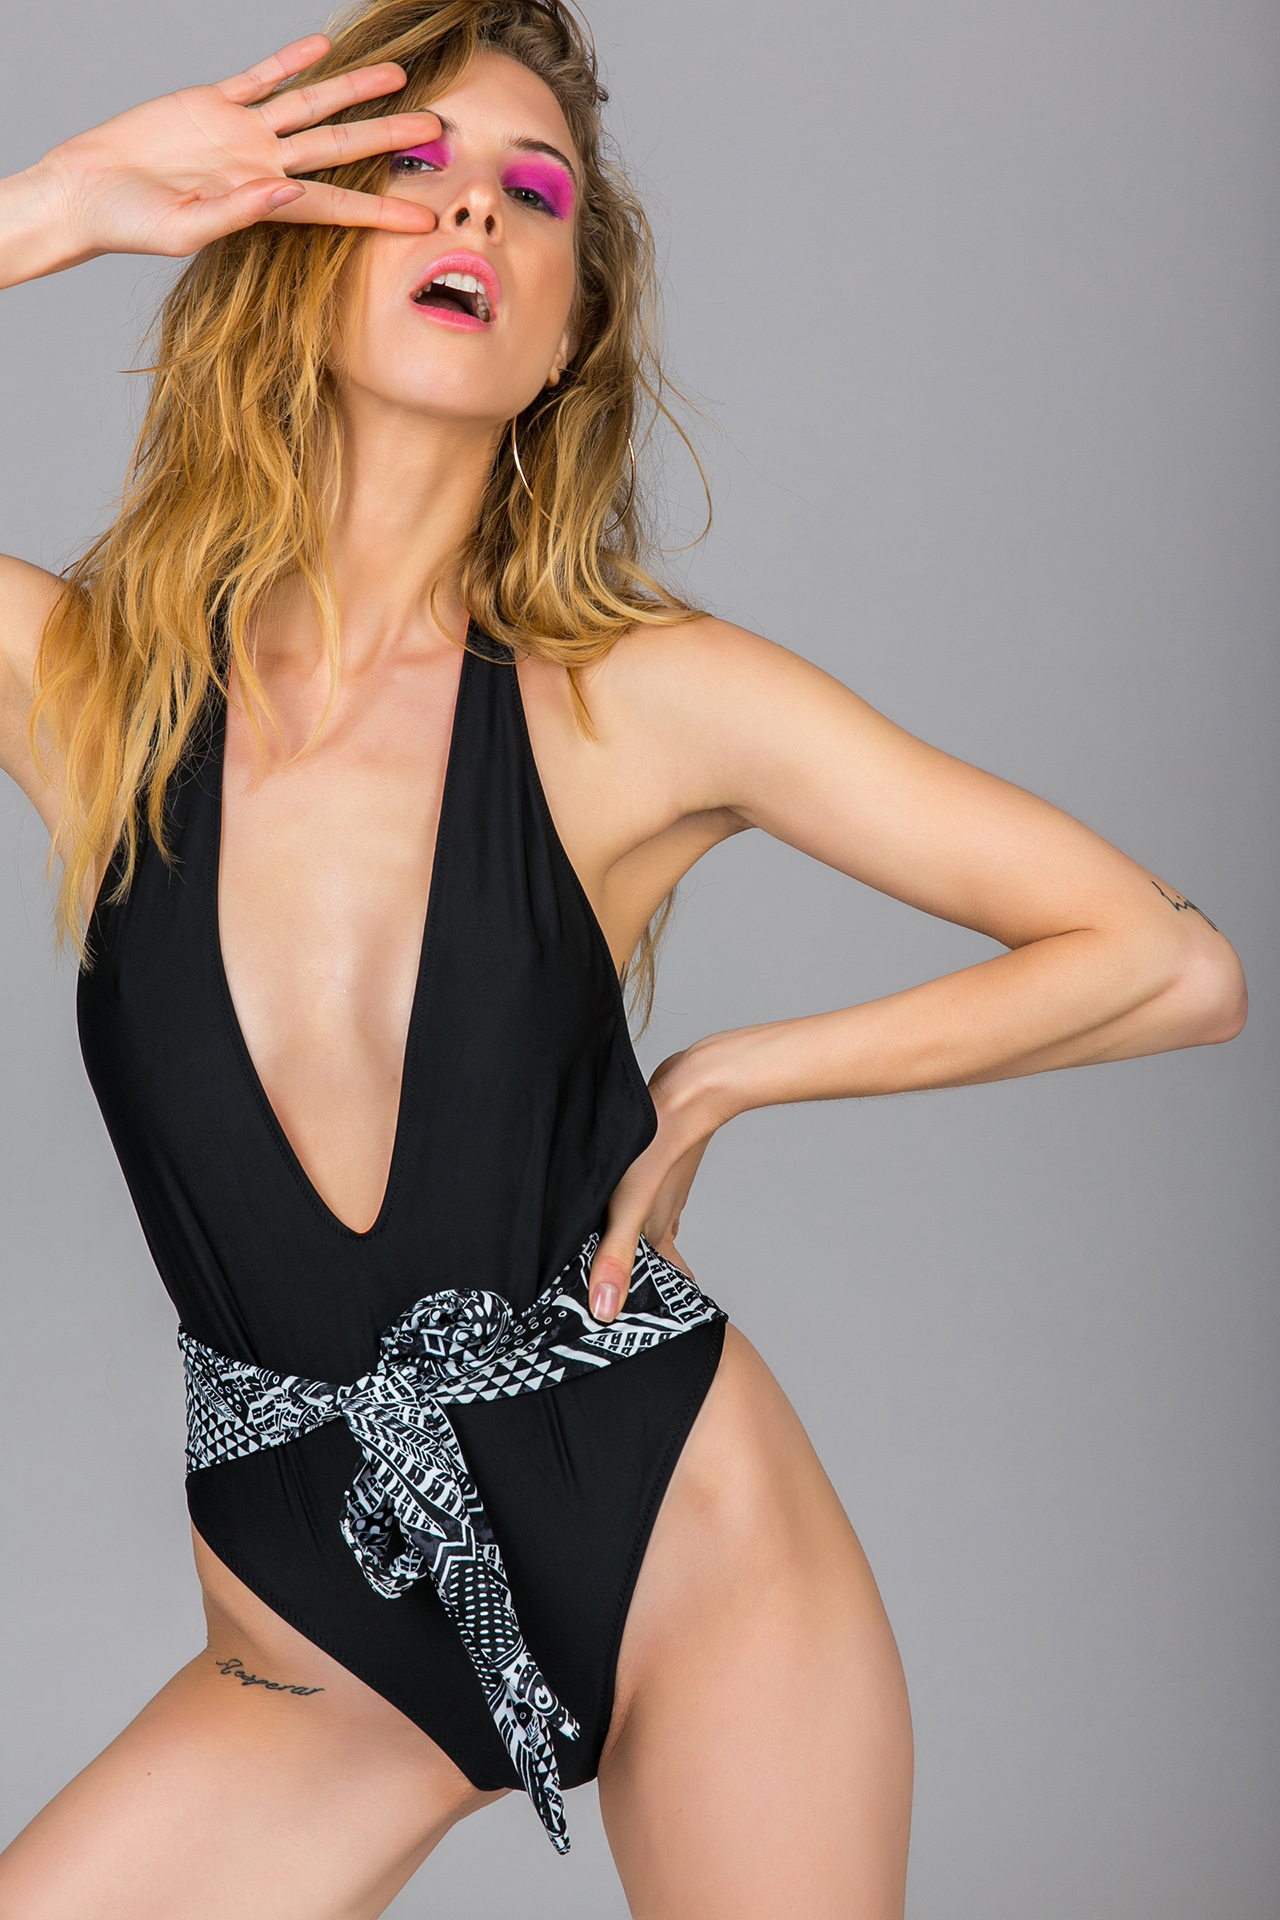 60% clearance search for clearance highly coveted range of Babe One-Piece Swimsuit